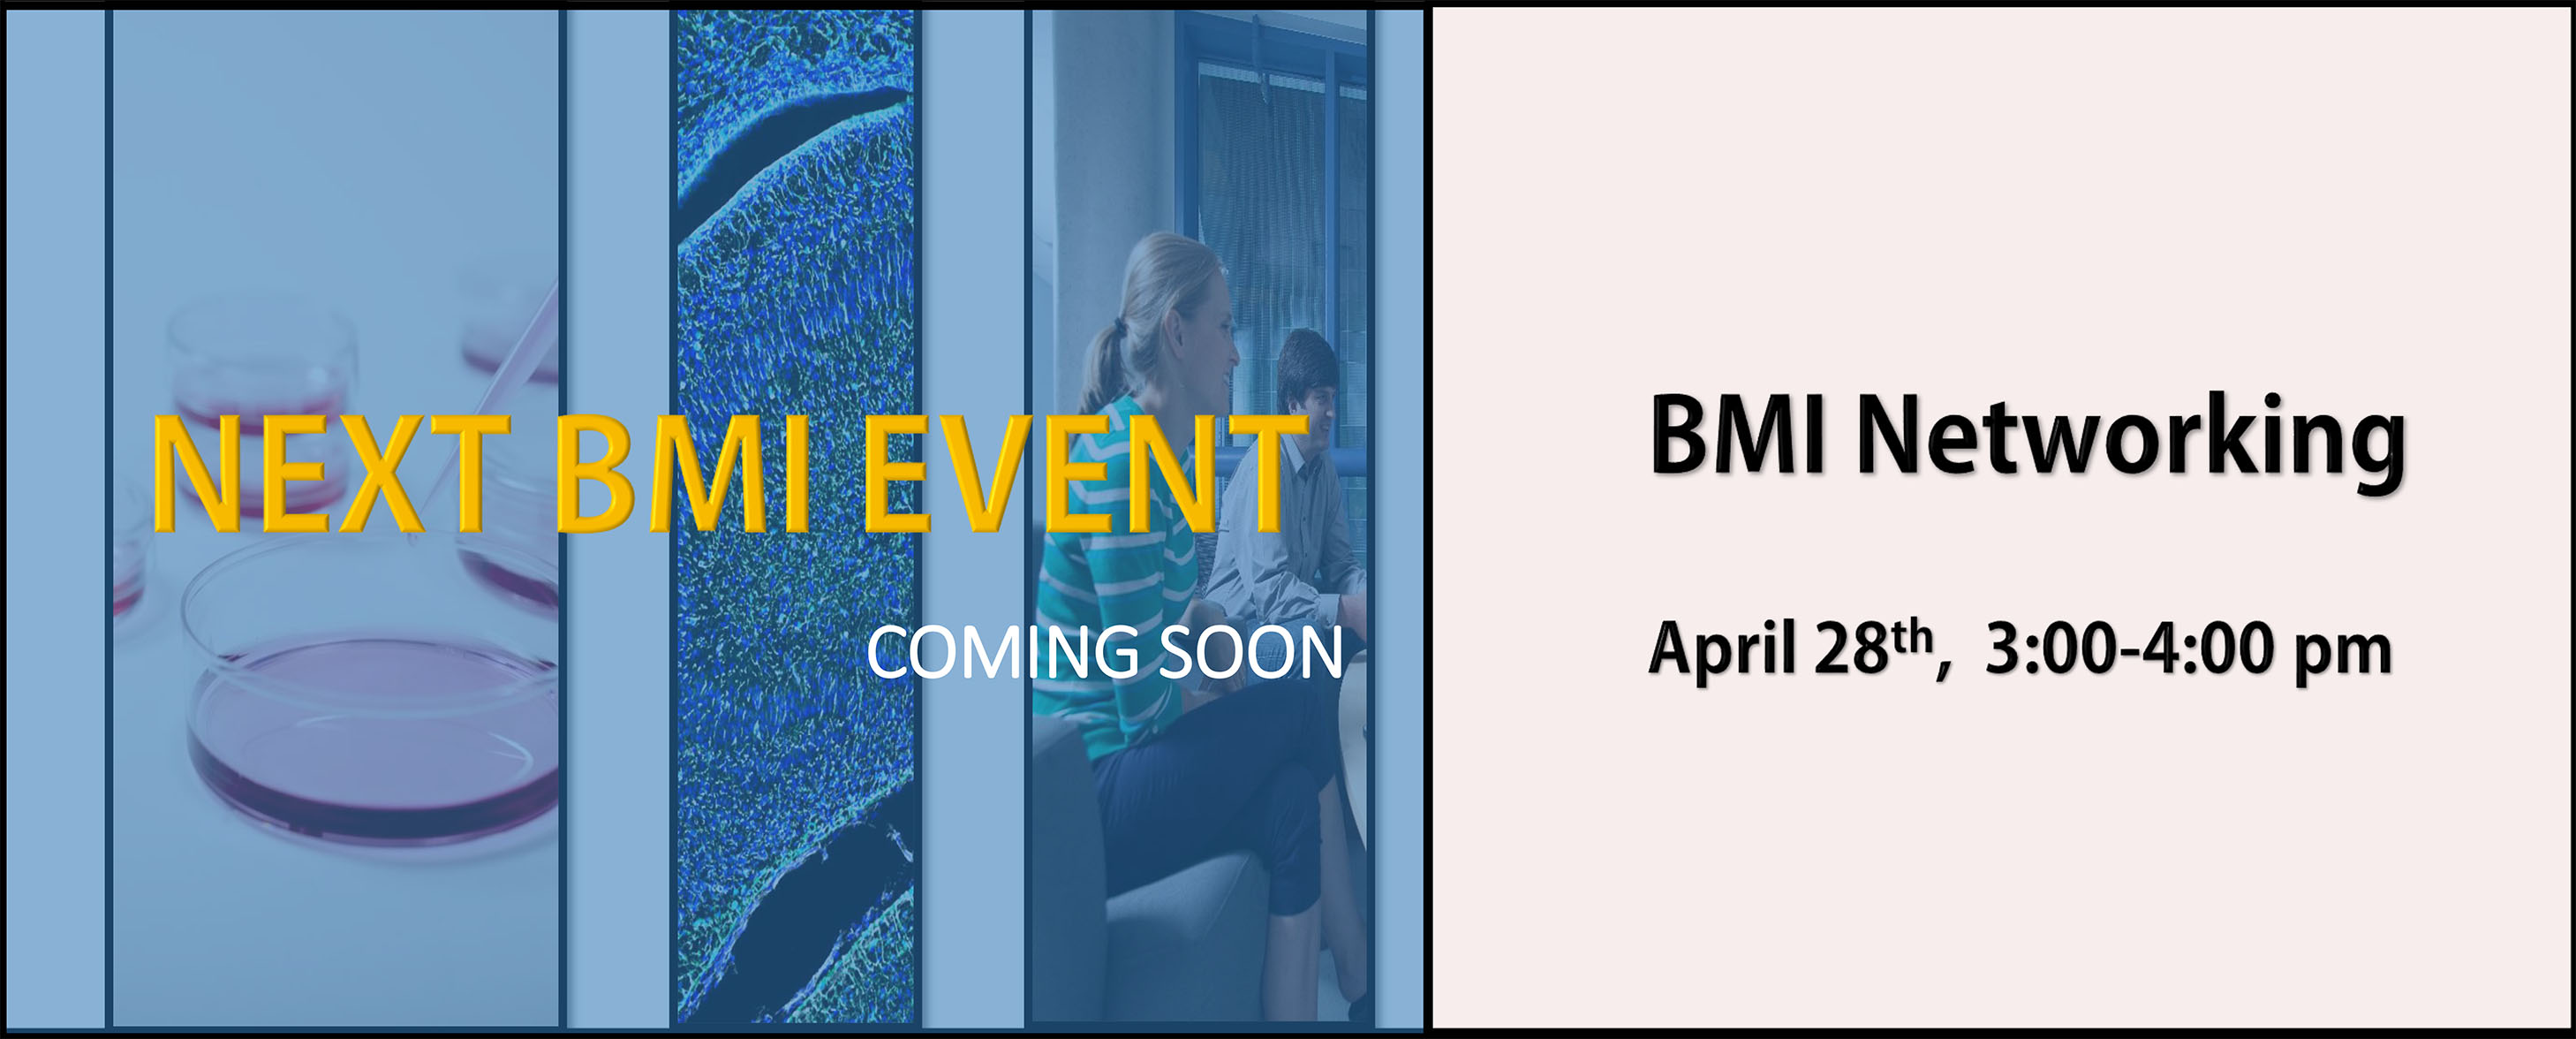 Next BMI Event - Join US - BMI Networking - April 28, 3:00-4:00 pm